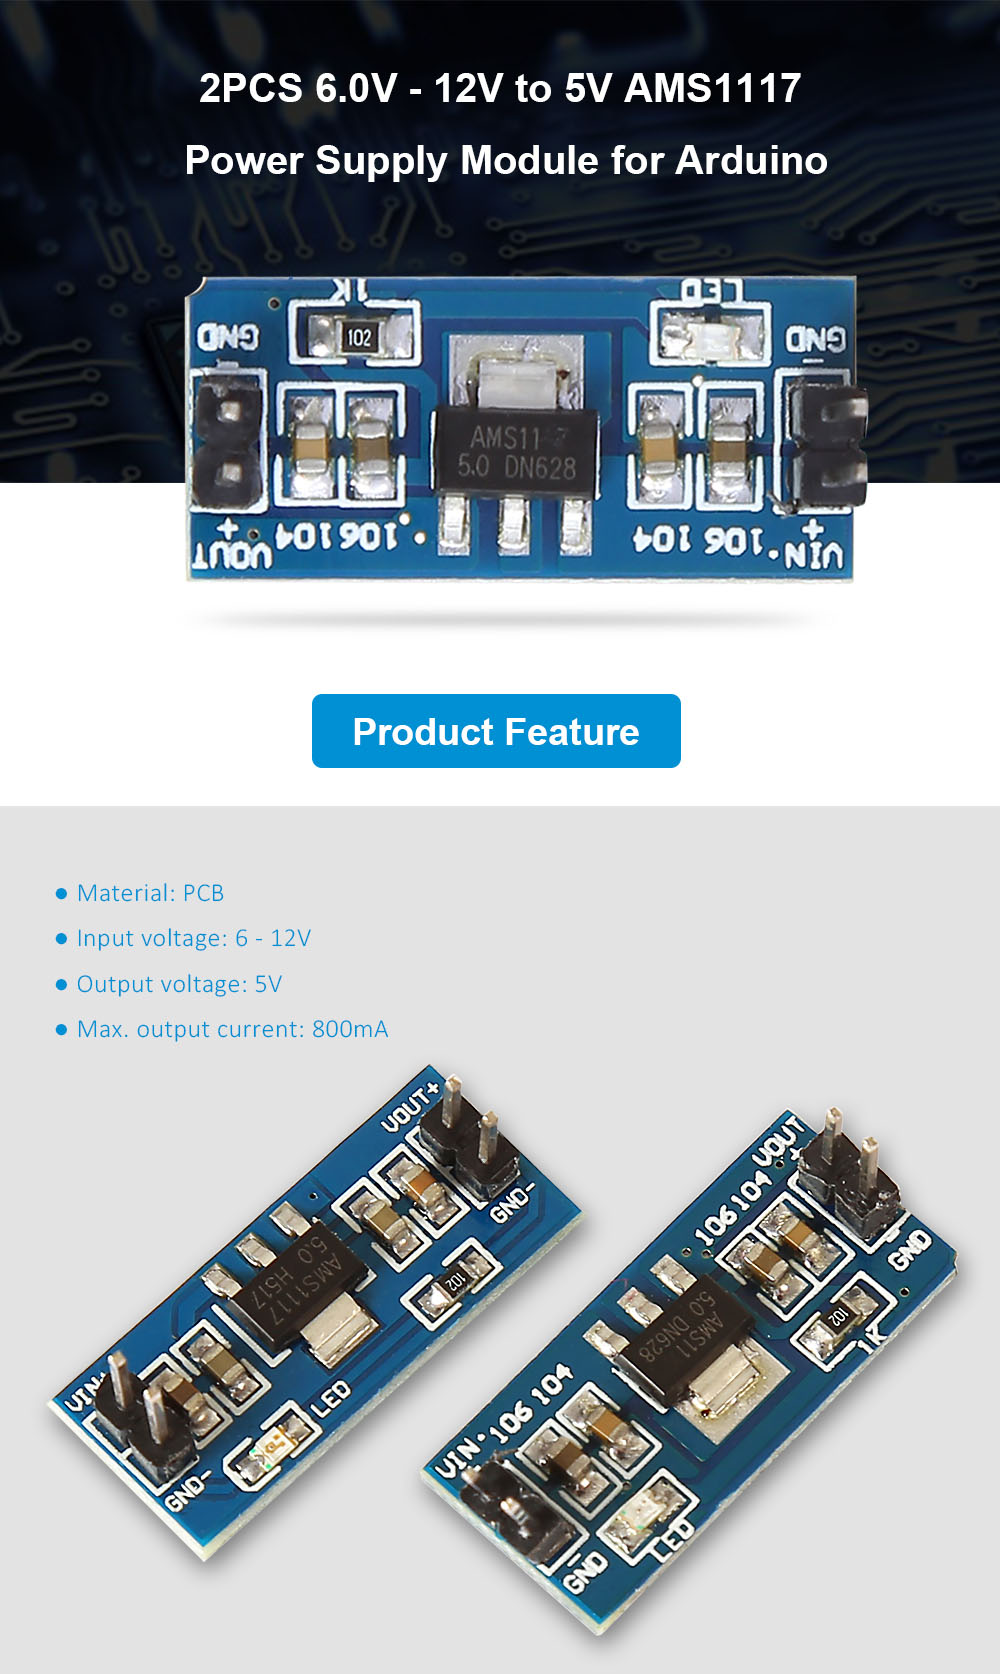 2PCS 6.0V - 12V to 5V AMS1117 Power Supply Module for Arduino